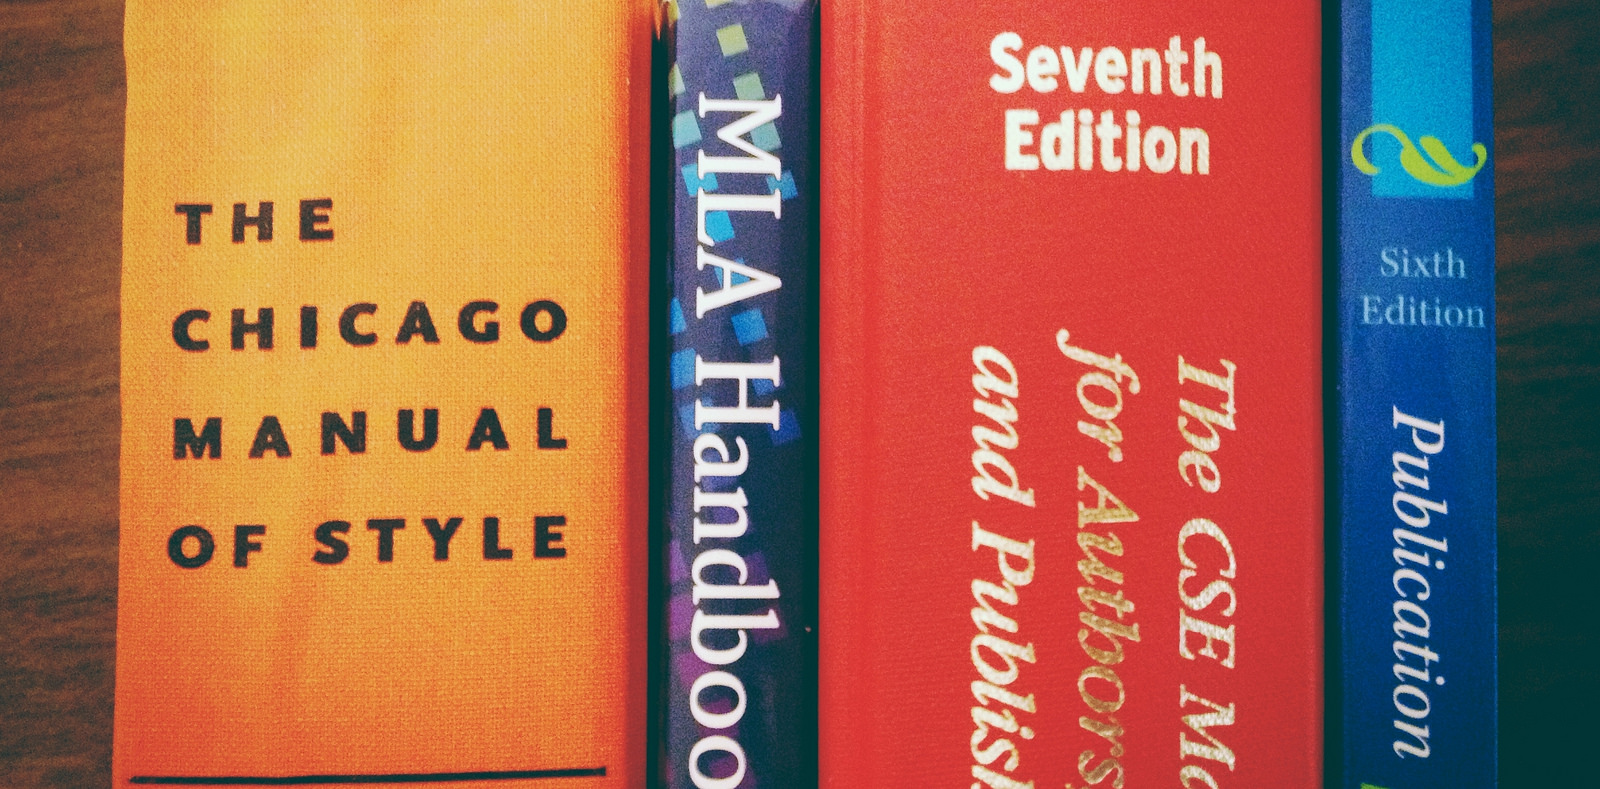 A series of reference books for various citation styles. Photo by by fixedandfrailing at Flickr.